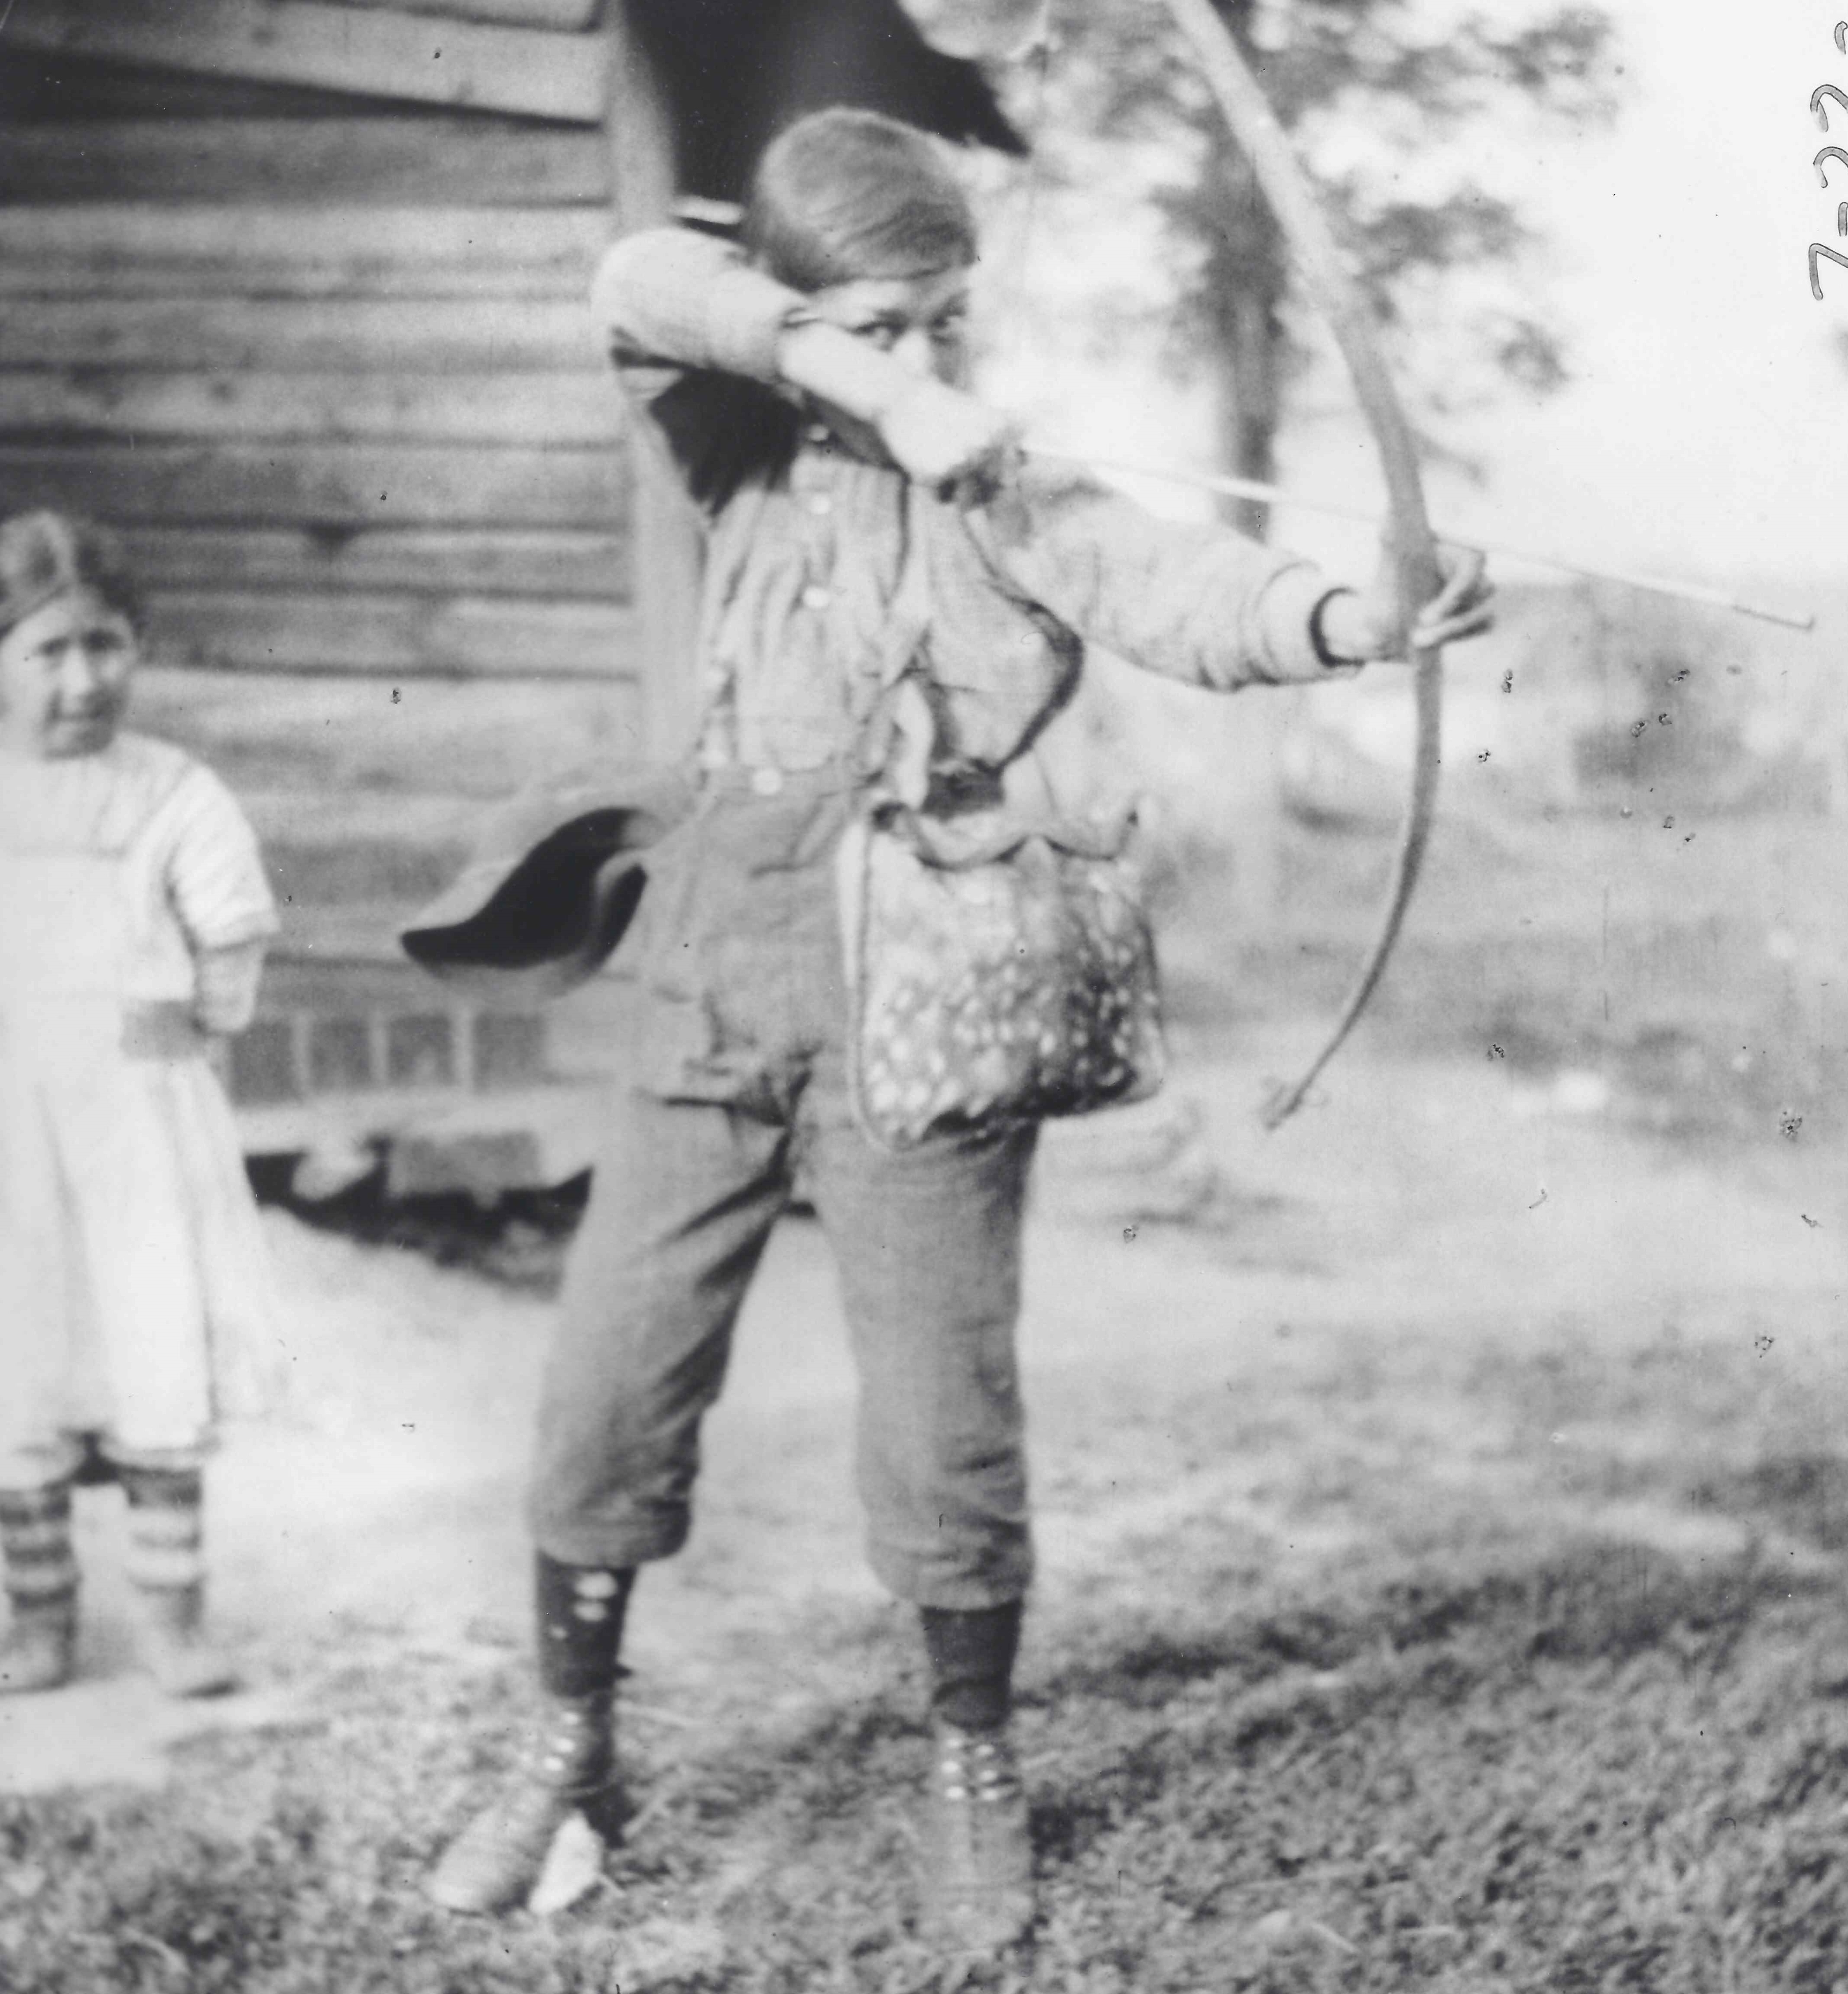 Boy with bow and arrow — Timiskaming circa 1913. (Frank Speck/American Philosophical Society)